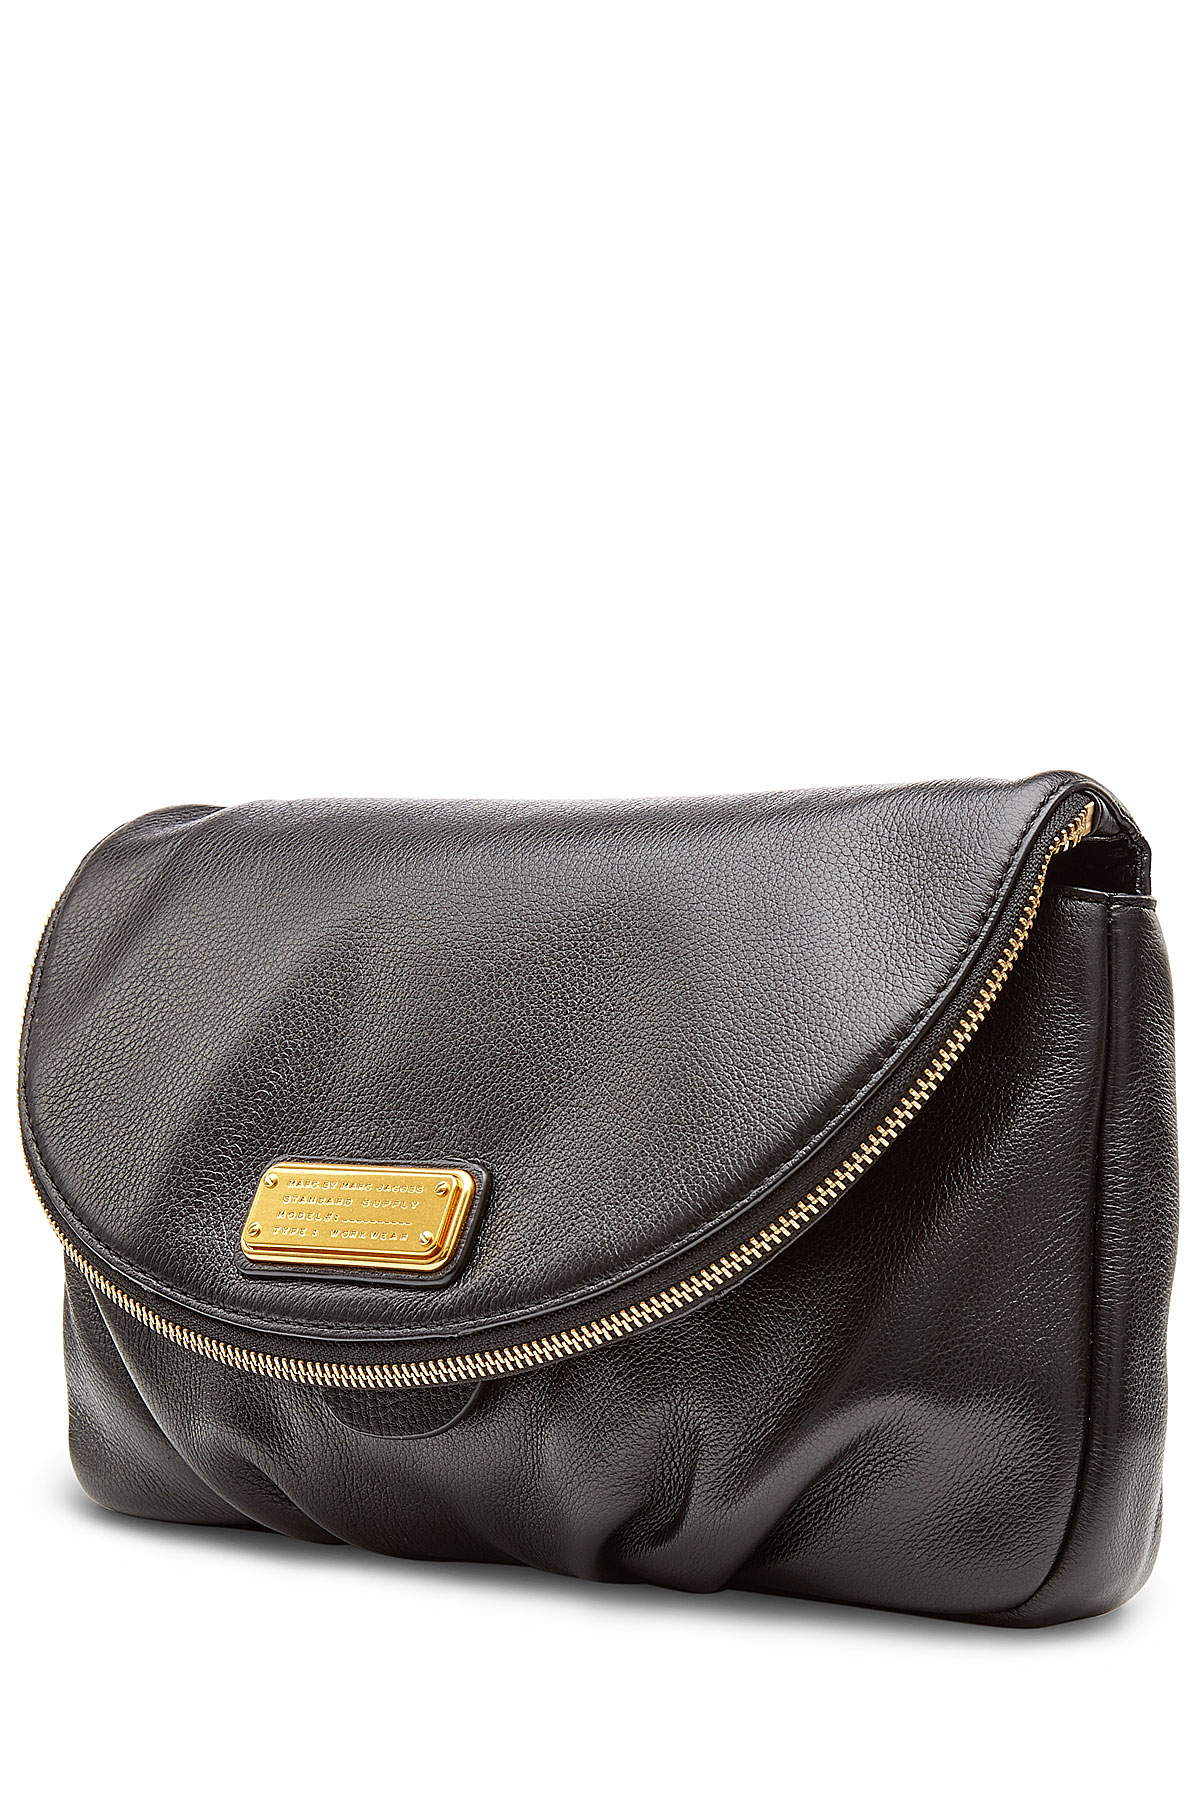 marc by marc jacobs new q leather clutch black in gold. Black Bedroom Furniture Sets. Home Design Ideas